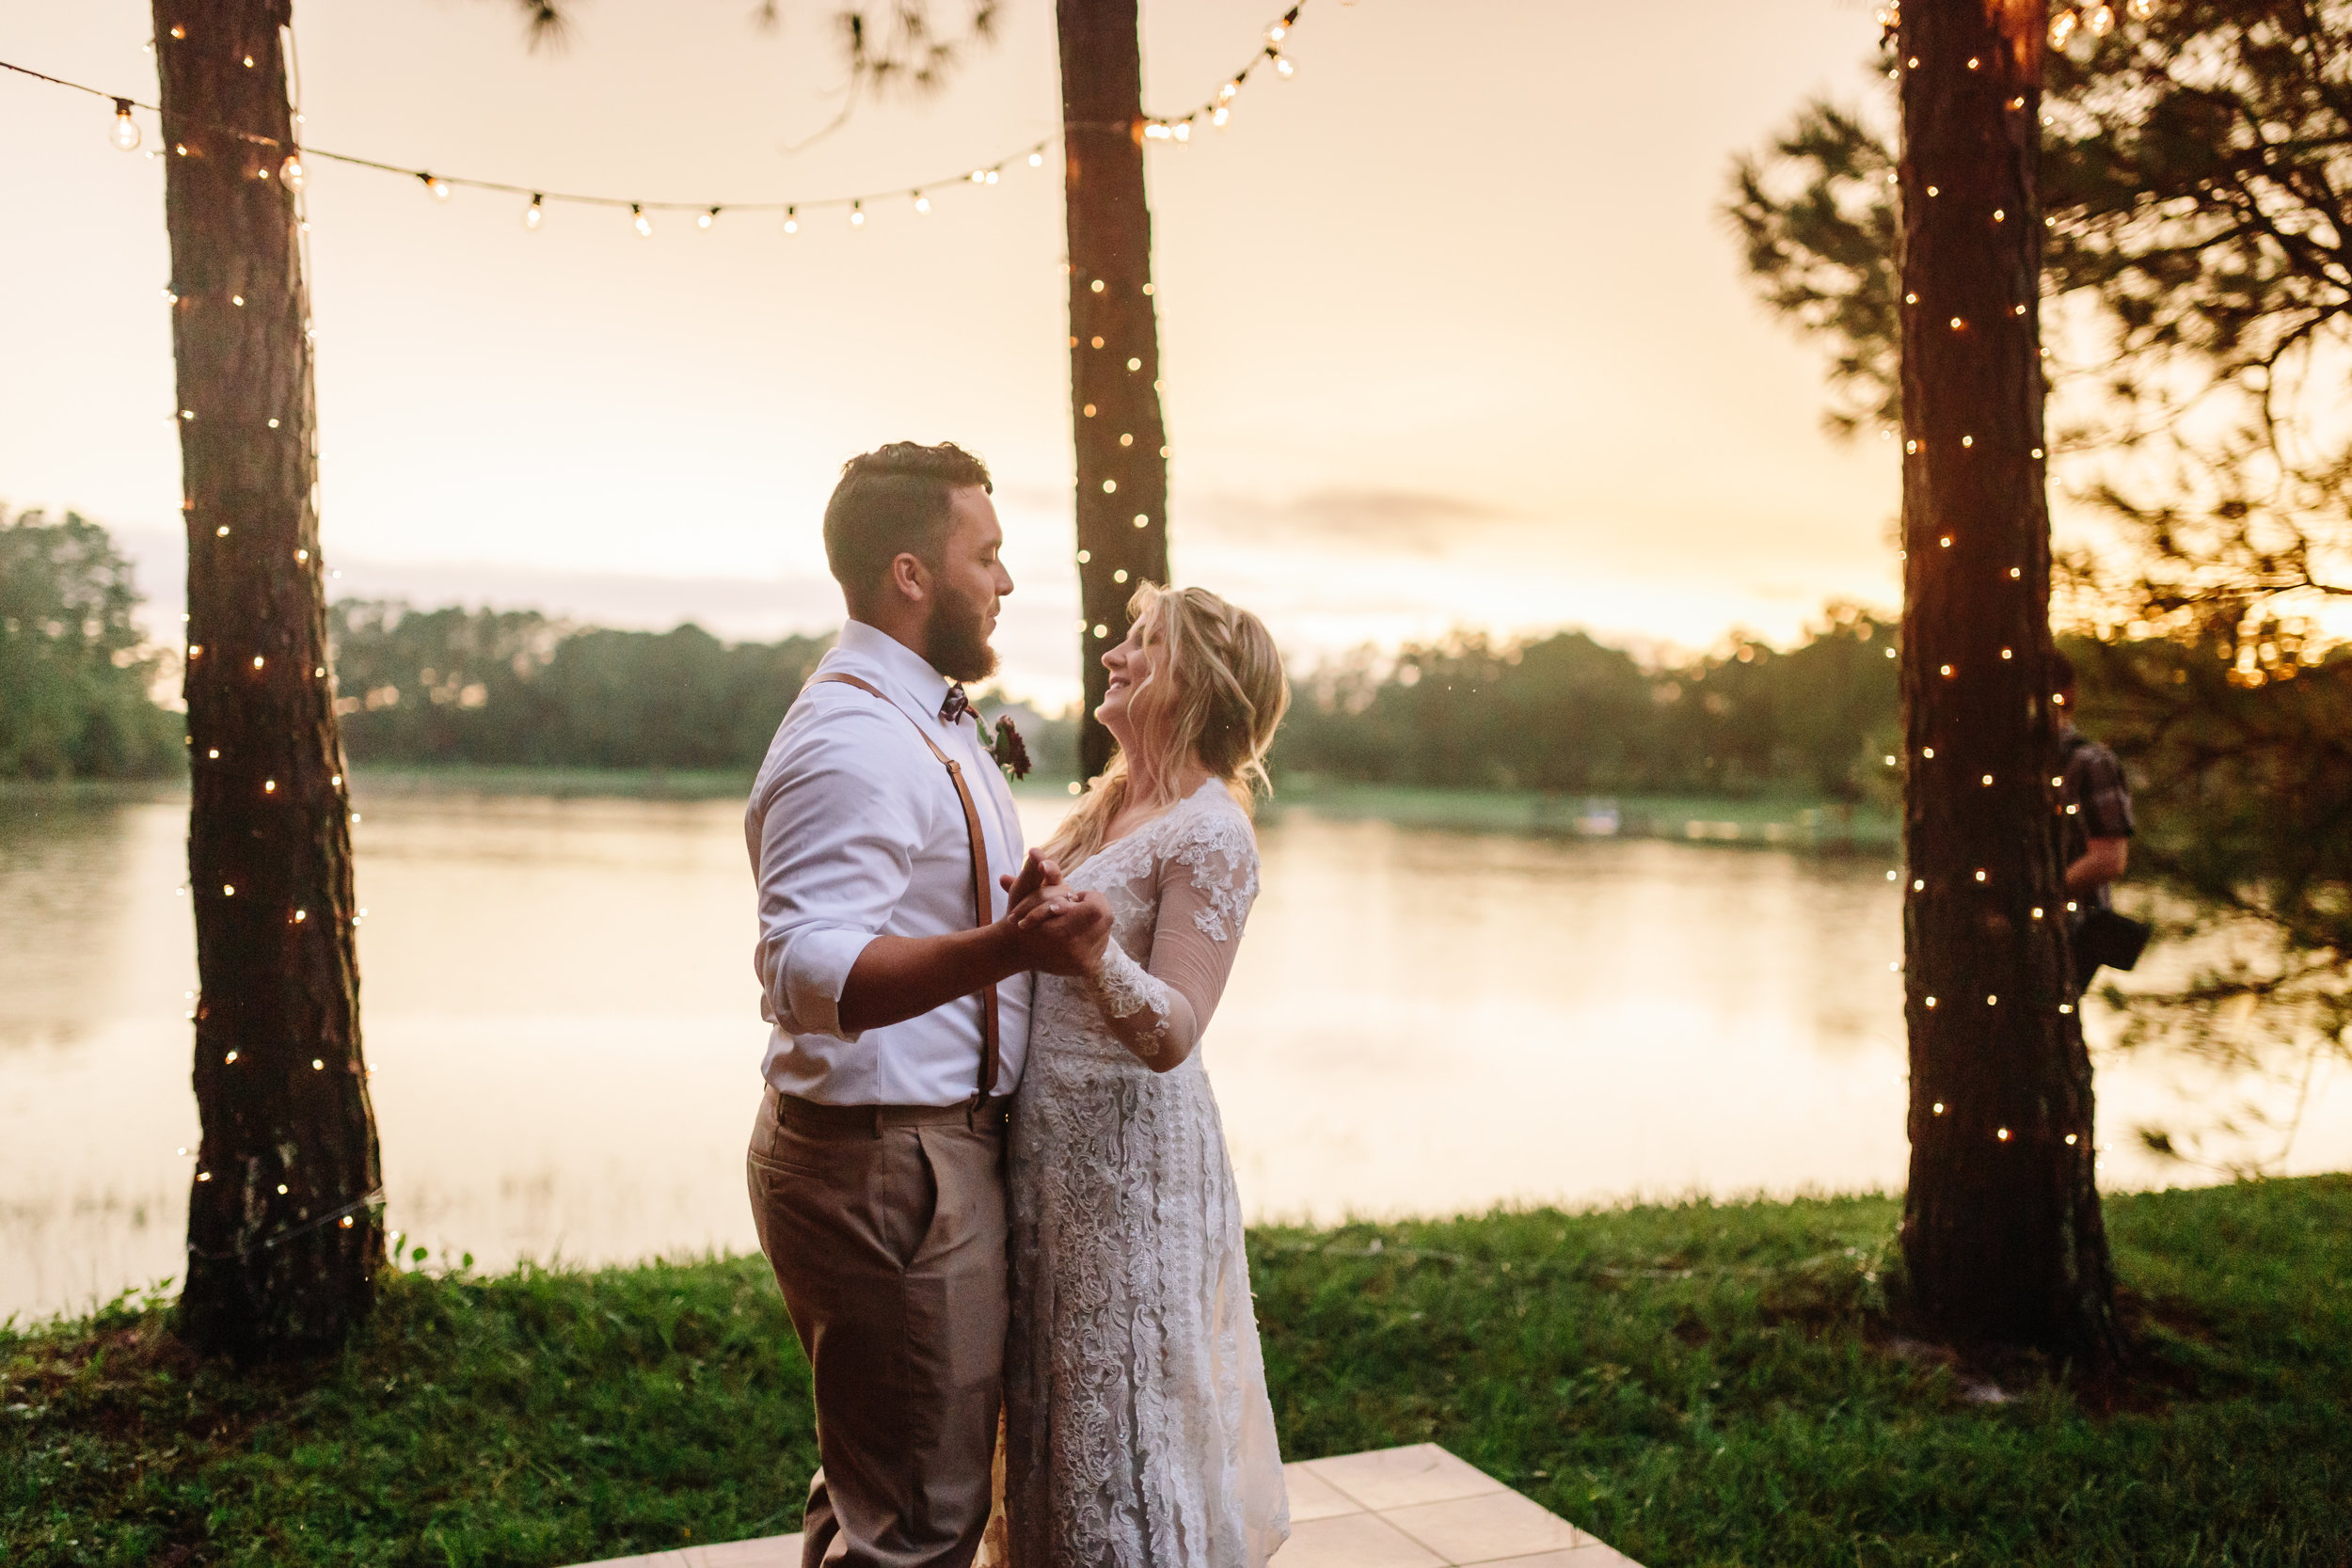 2018.07.28 Brooke and Korey Arnold Winter Springs Wedding FINALS-708.jpg